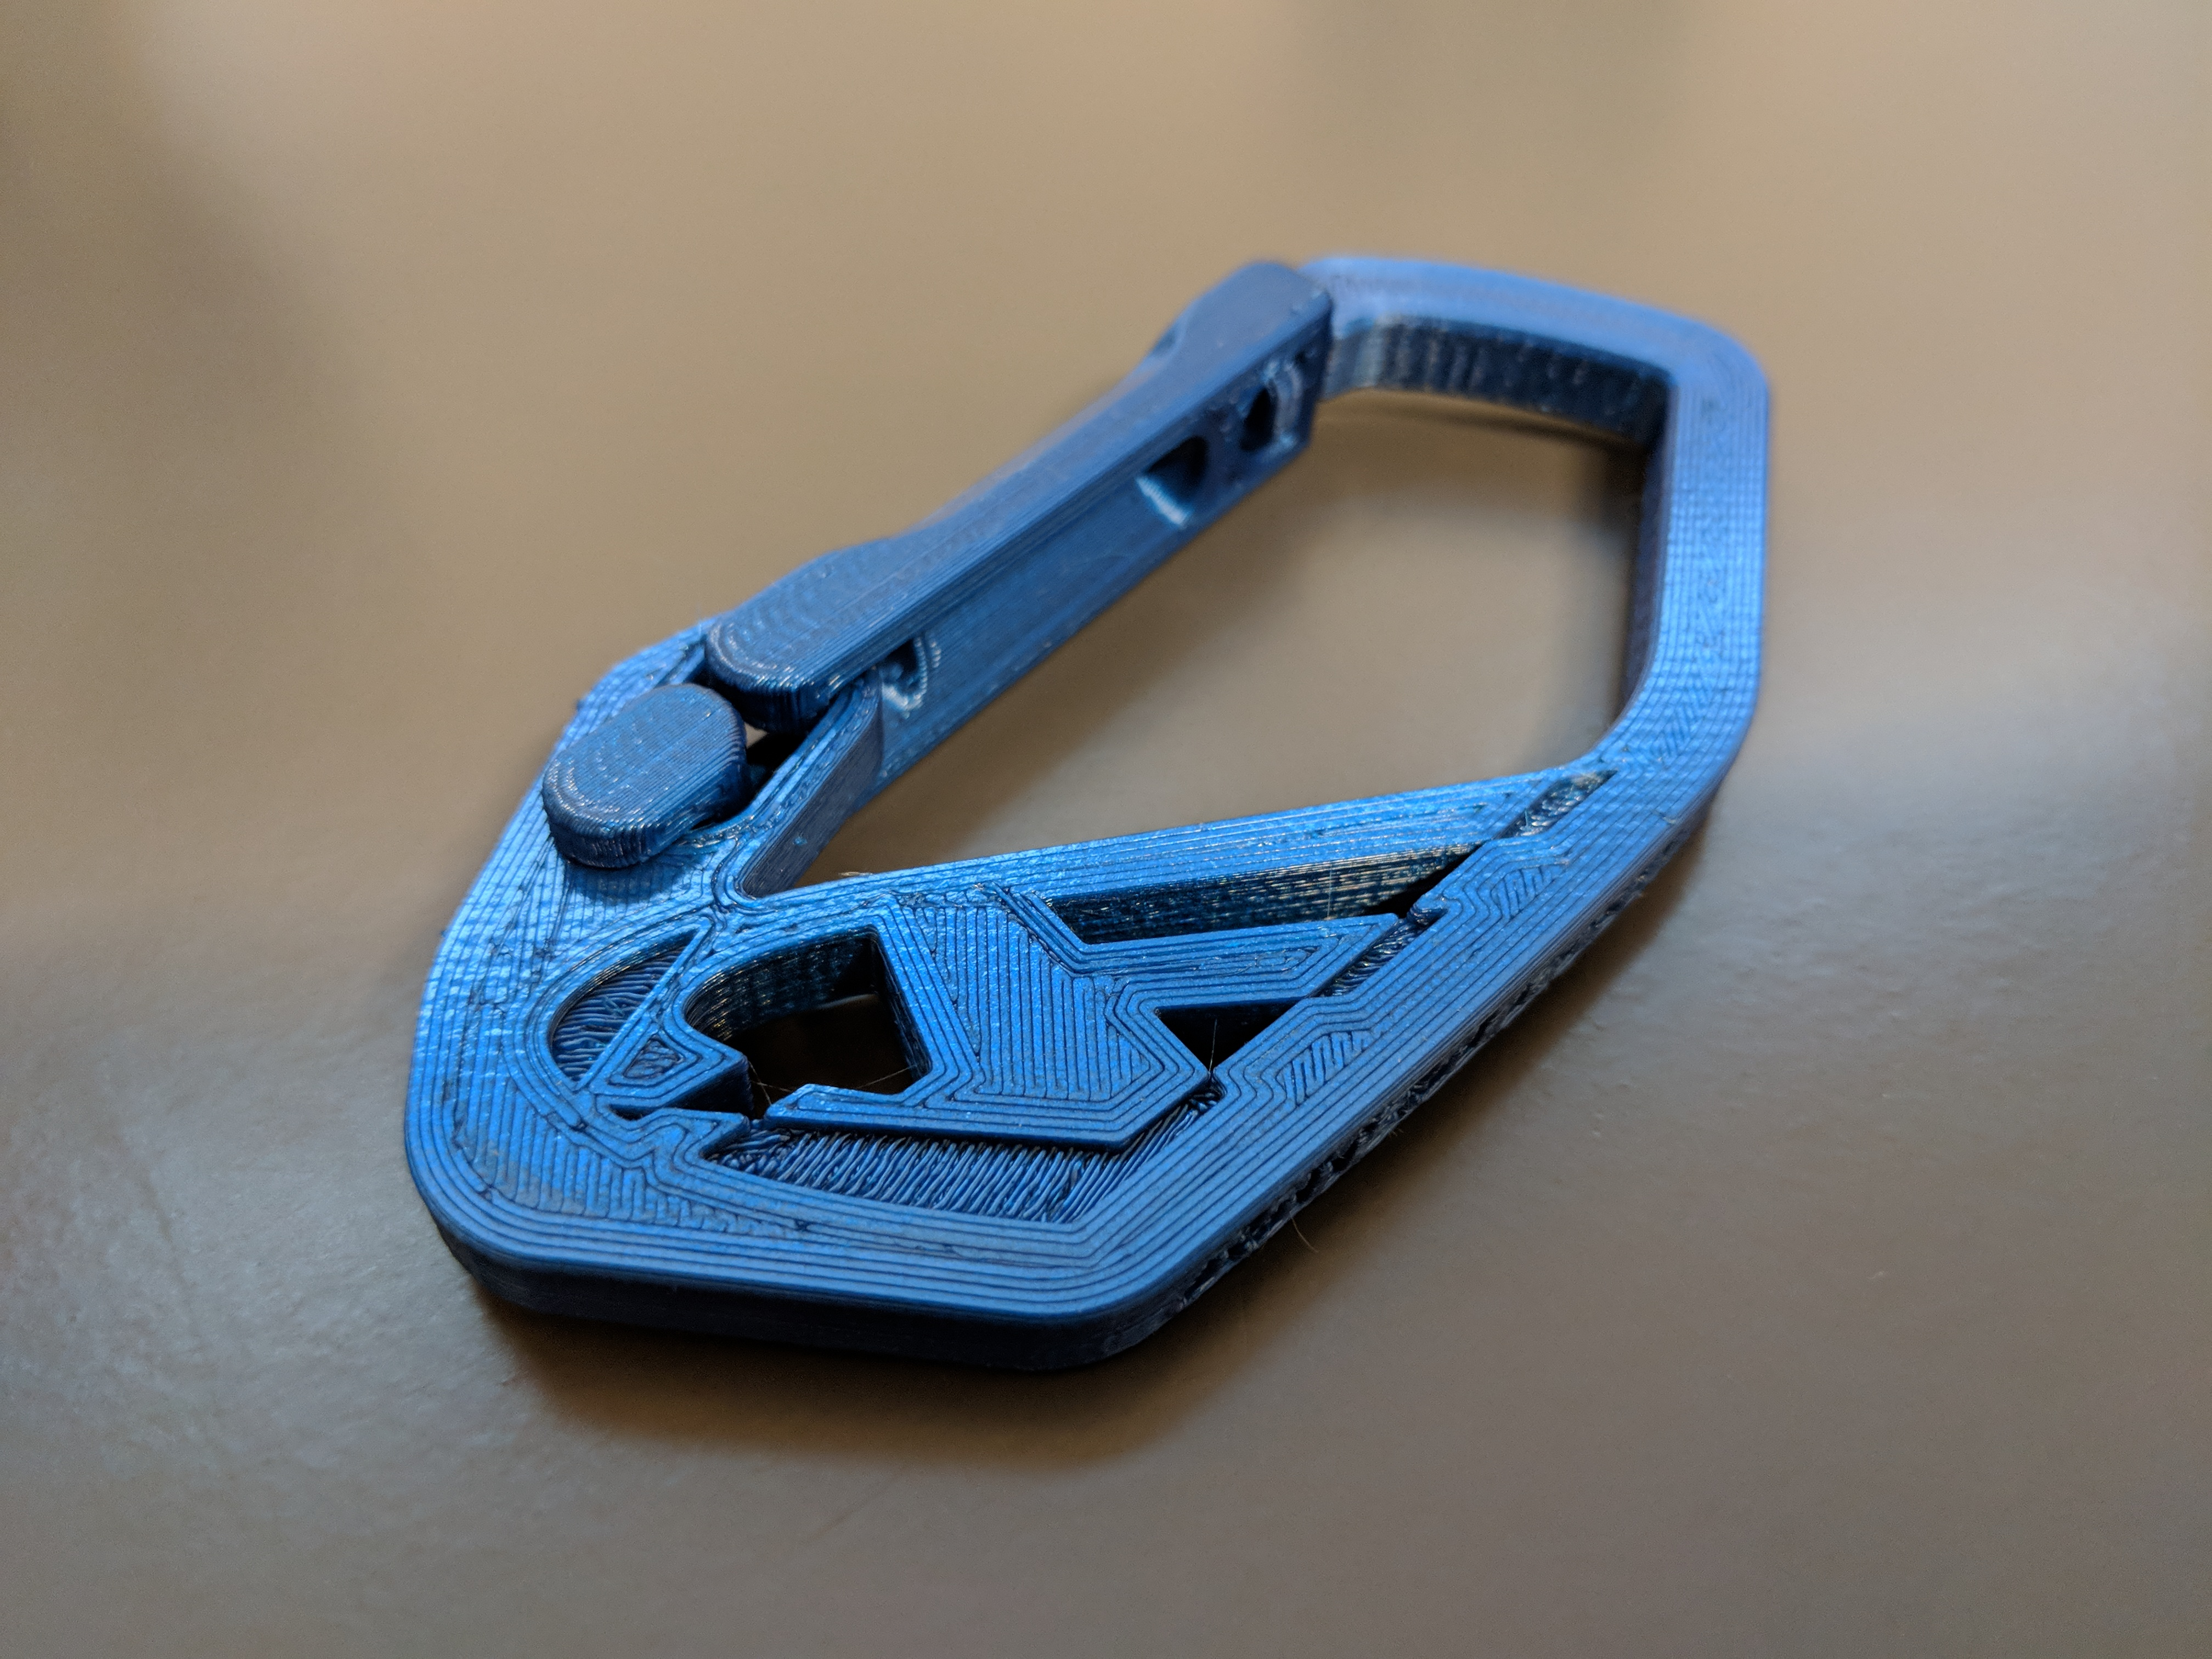 c42a3e9c65409  NEW  Strong Flex door Carabiner ddf3d Customized. Made by MKingCharles